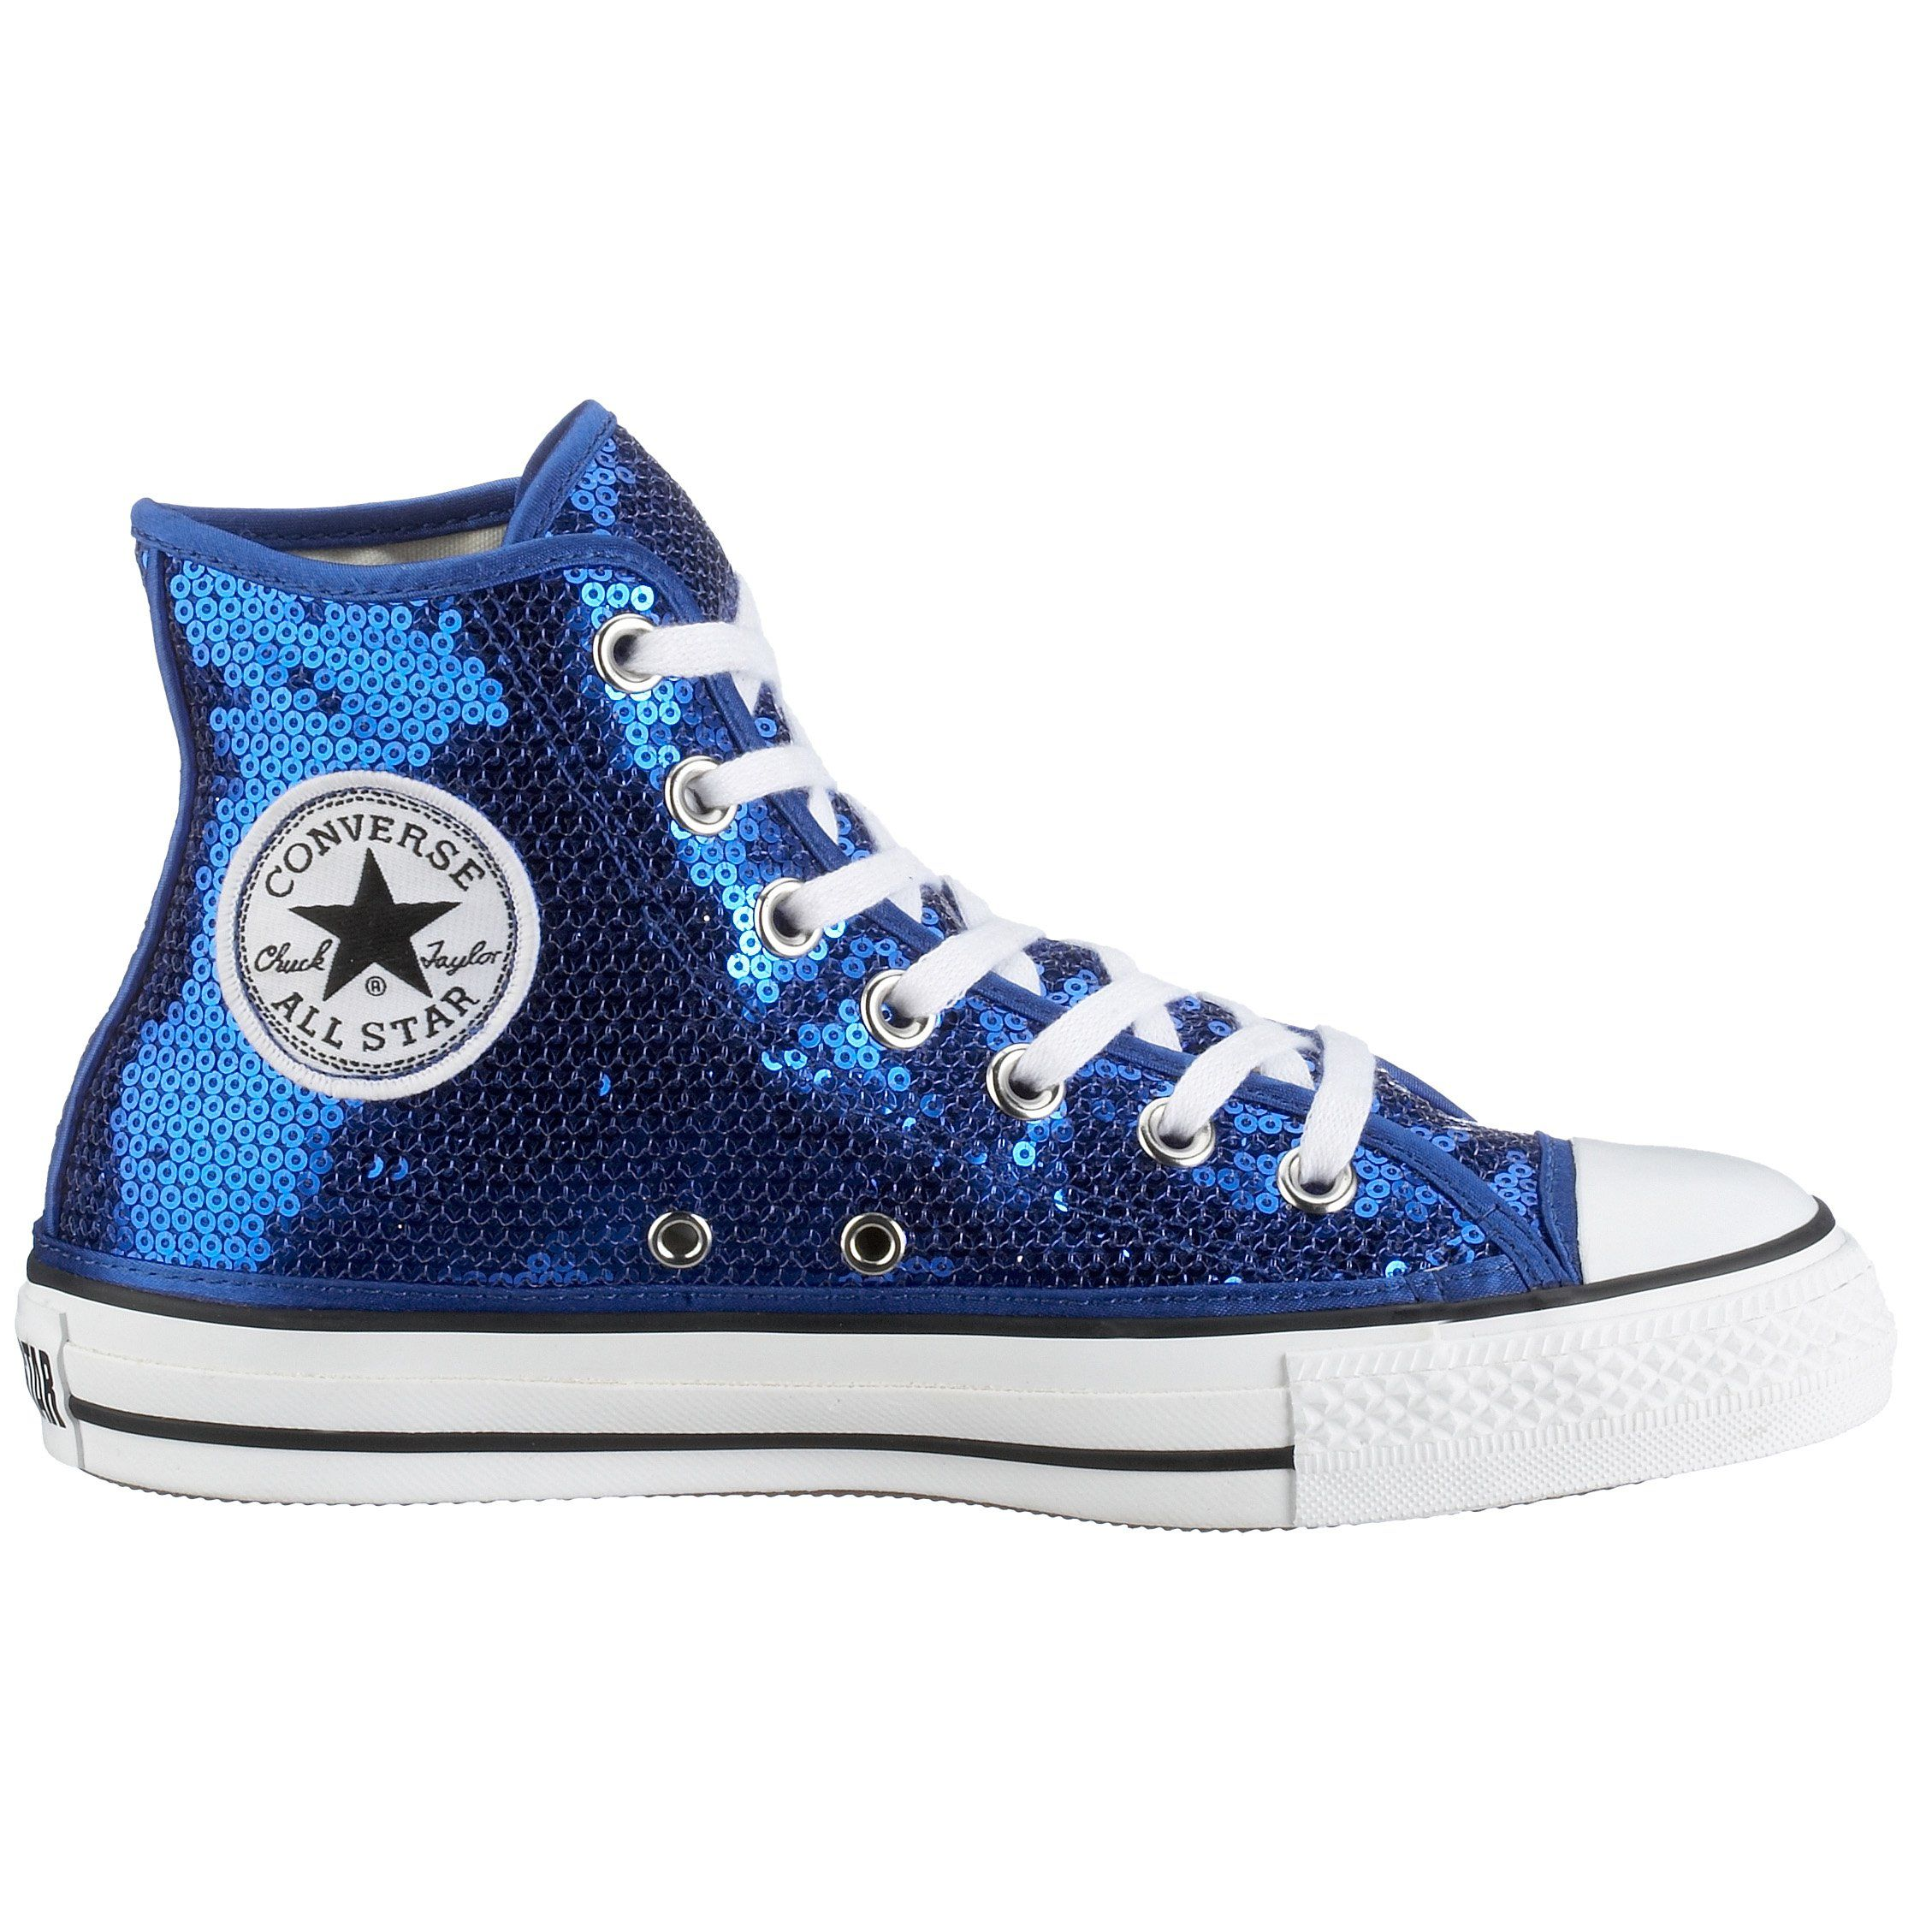 97a3626600c4 Royal blue sequin Converse high top sneakers